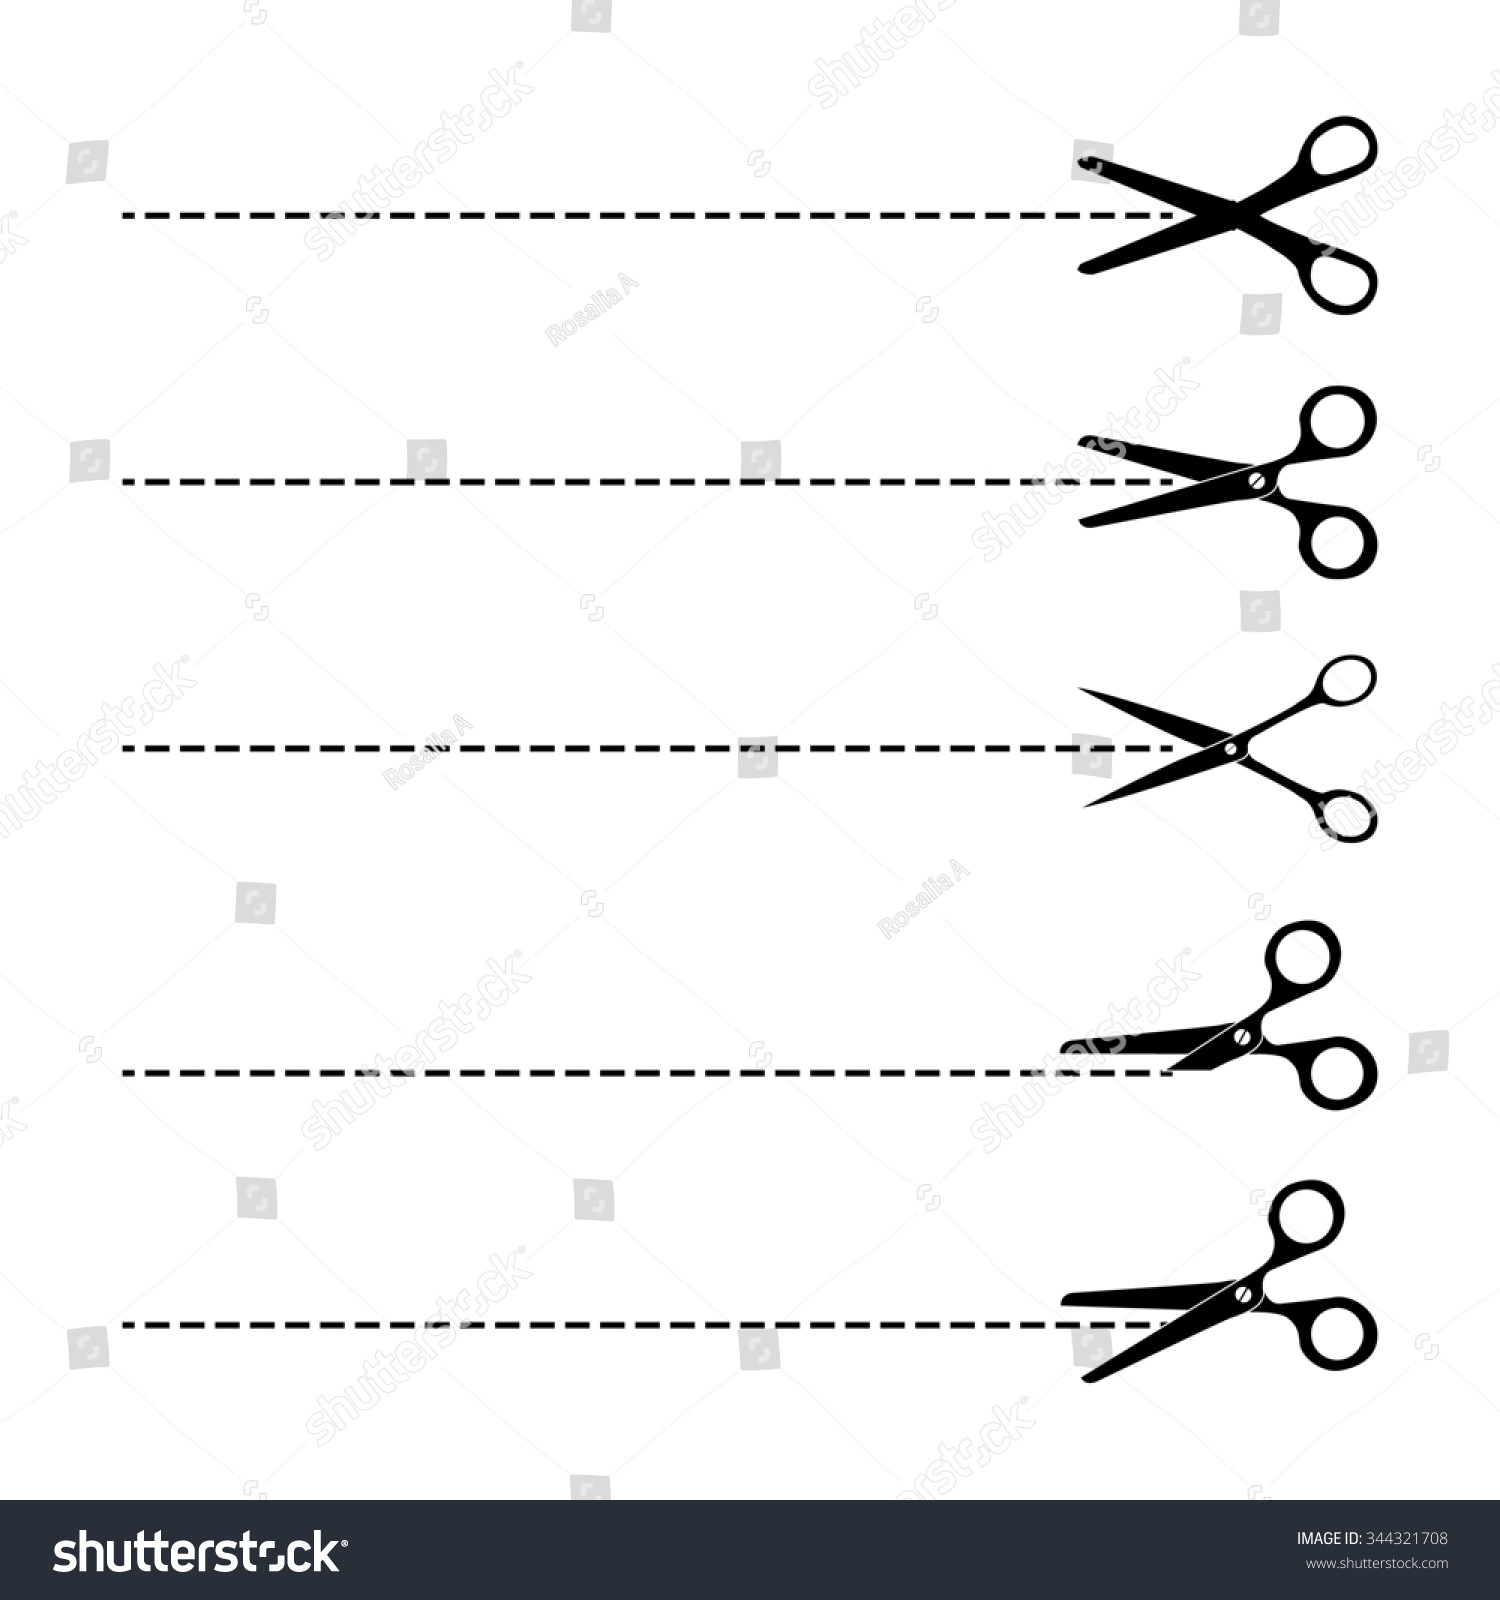 Scissors icon cut here symbol scissors stock illustration the scissors icon cut here symbol scissors and dotted line cut here scissors biocorpaavc